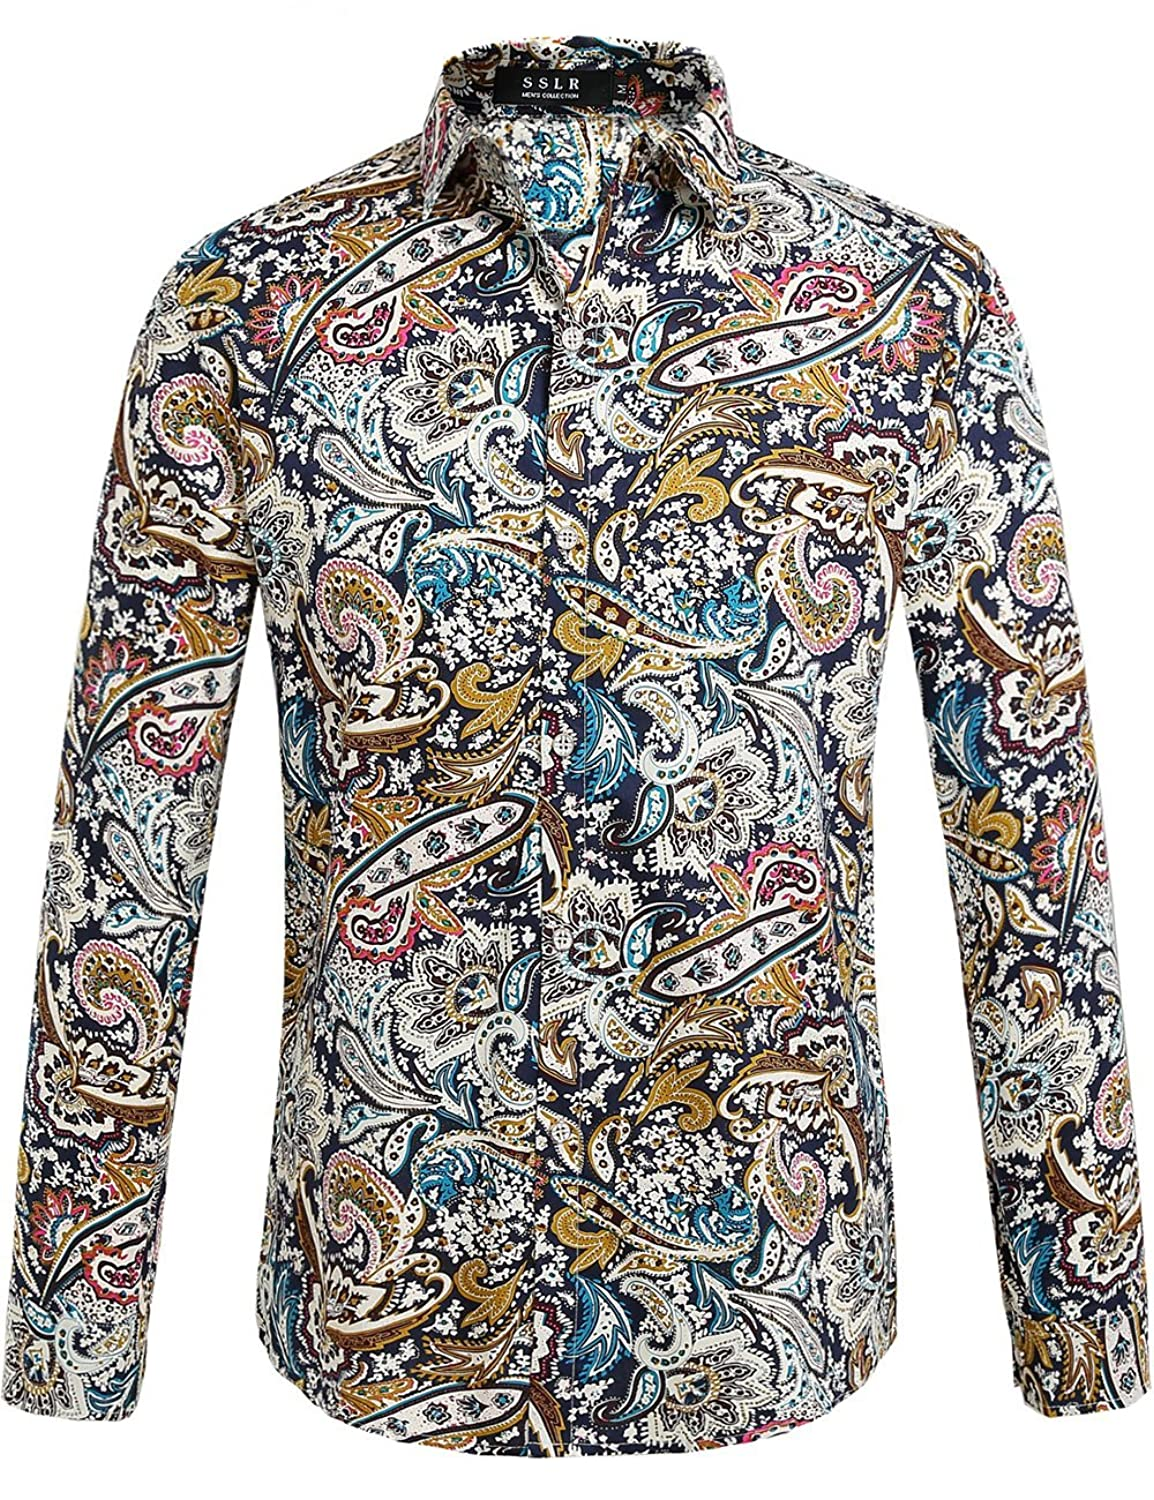 1960s Mens Shirts | 60s Mod Shirts, Hippie Shirts SSLR Mens Paisley Cotton Long Sleeve Casual Button Down Shirt $26.00 AT vintagedancer.com